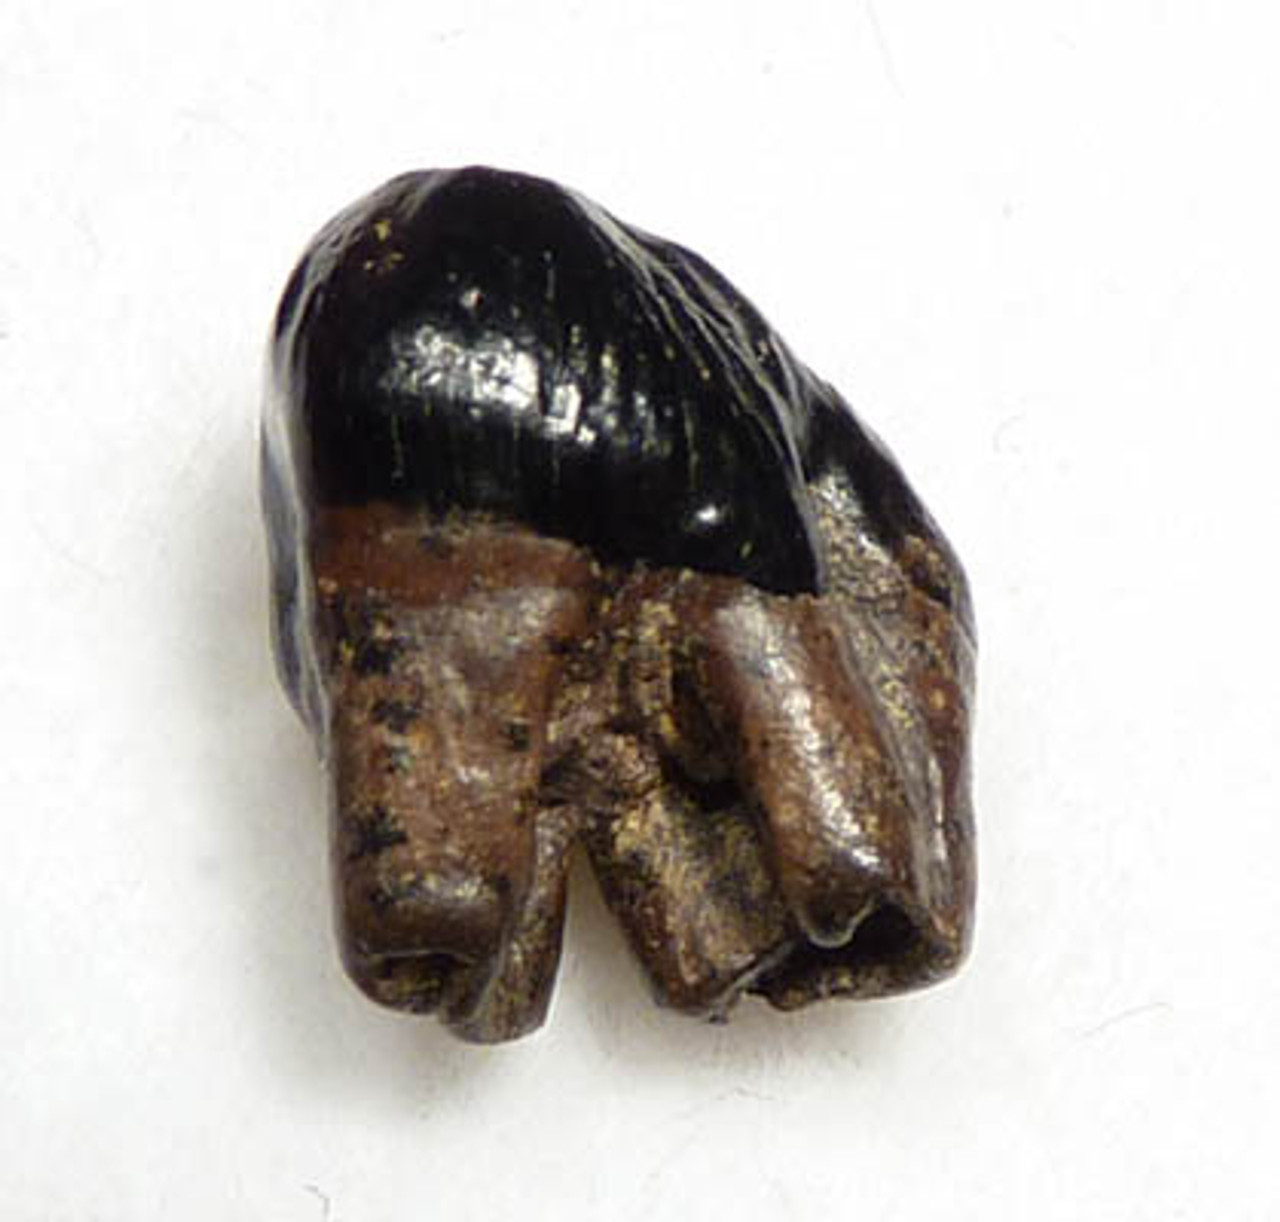 METATHERIAN MESOZOIC MAMMAL FOSSIL DIDELPHODON PRE-MOLAR WITH INTACT CROWN AND ROOTS *MM003